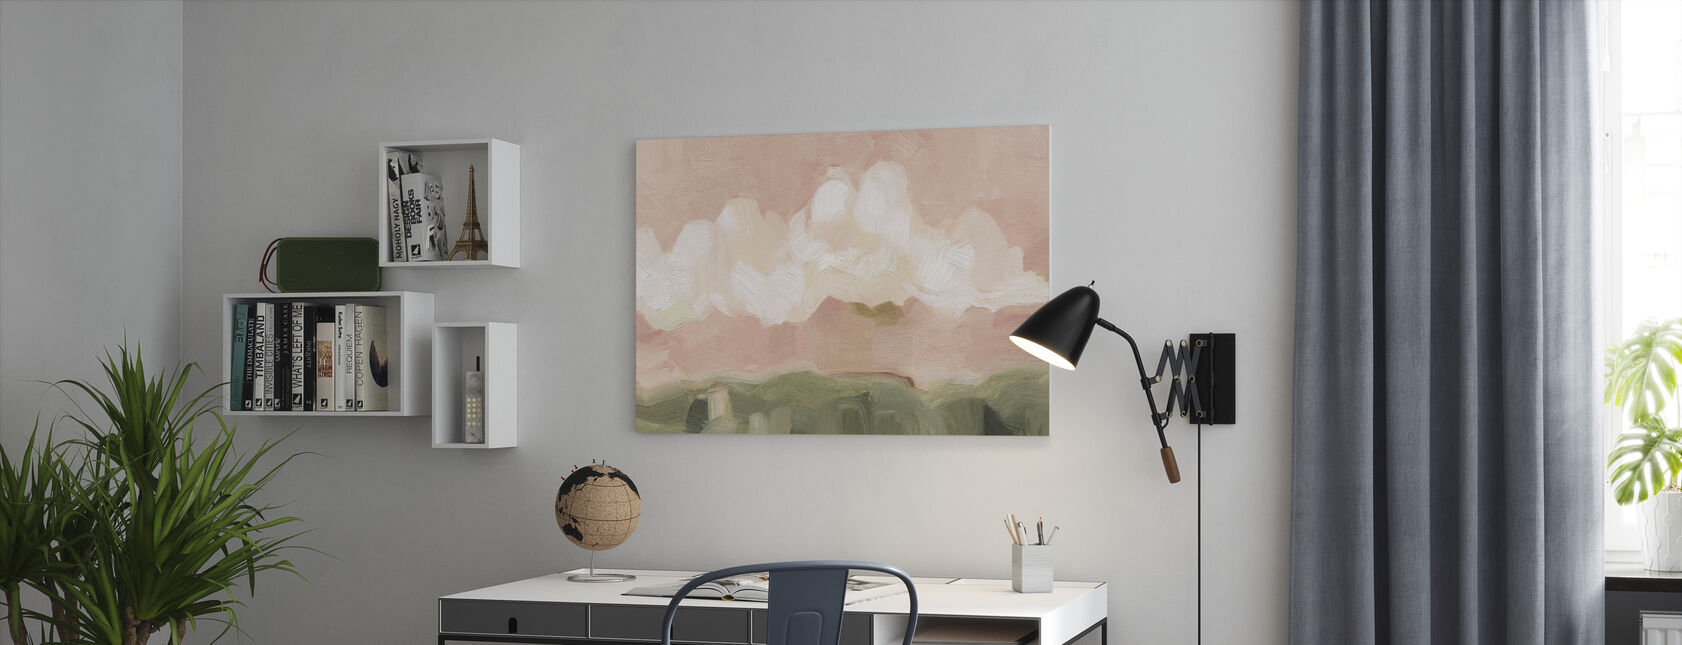 Pink Haze Sunset - Canvas print - Office